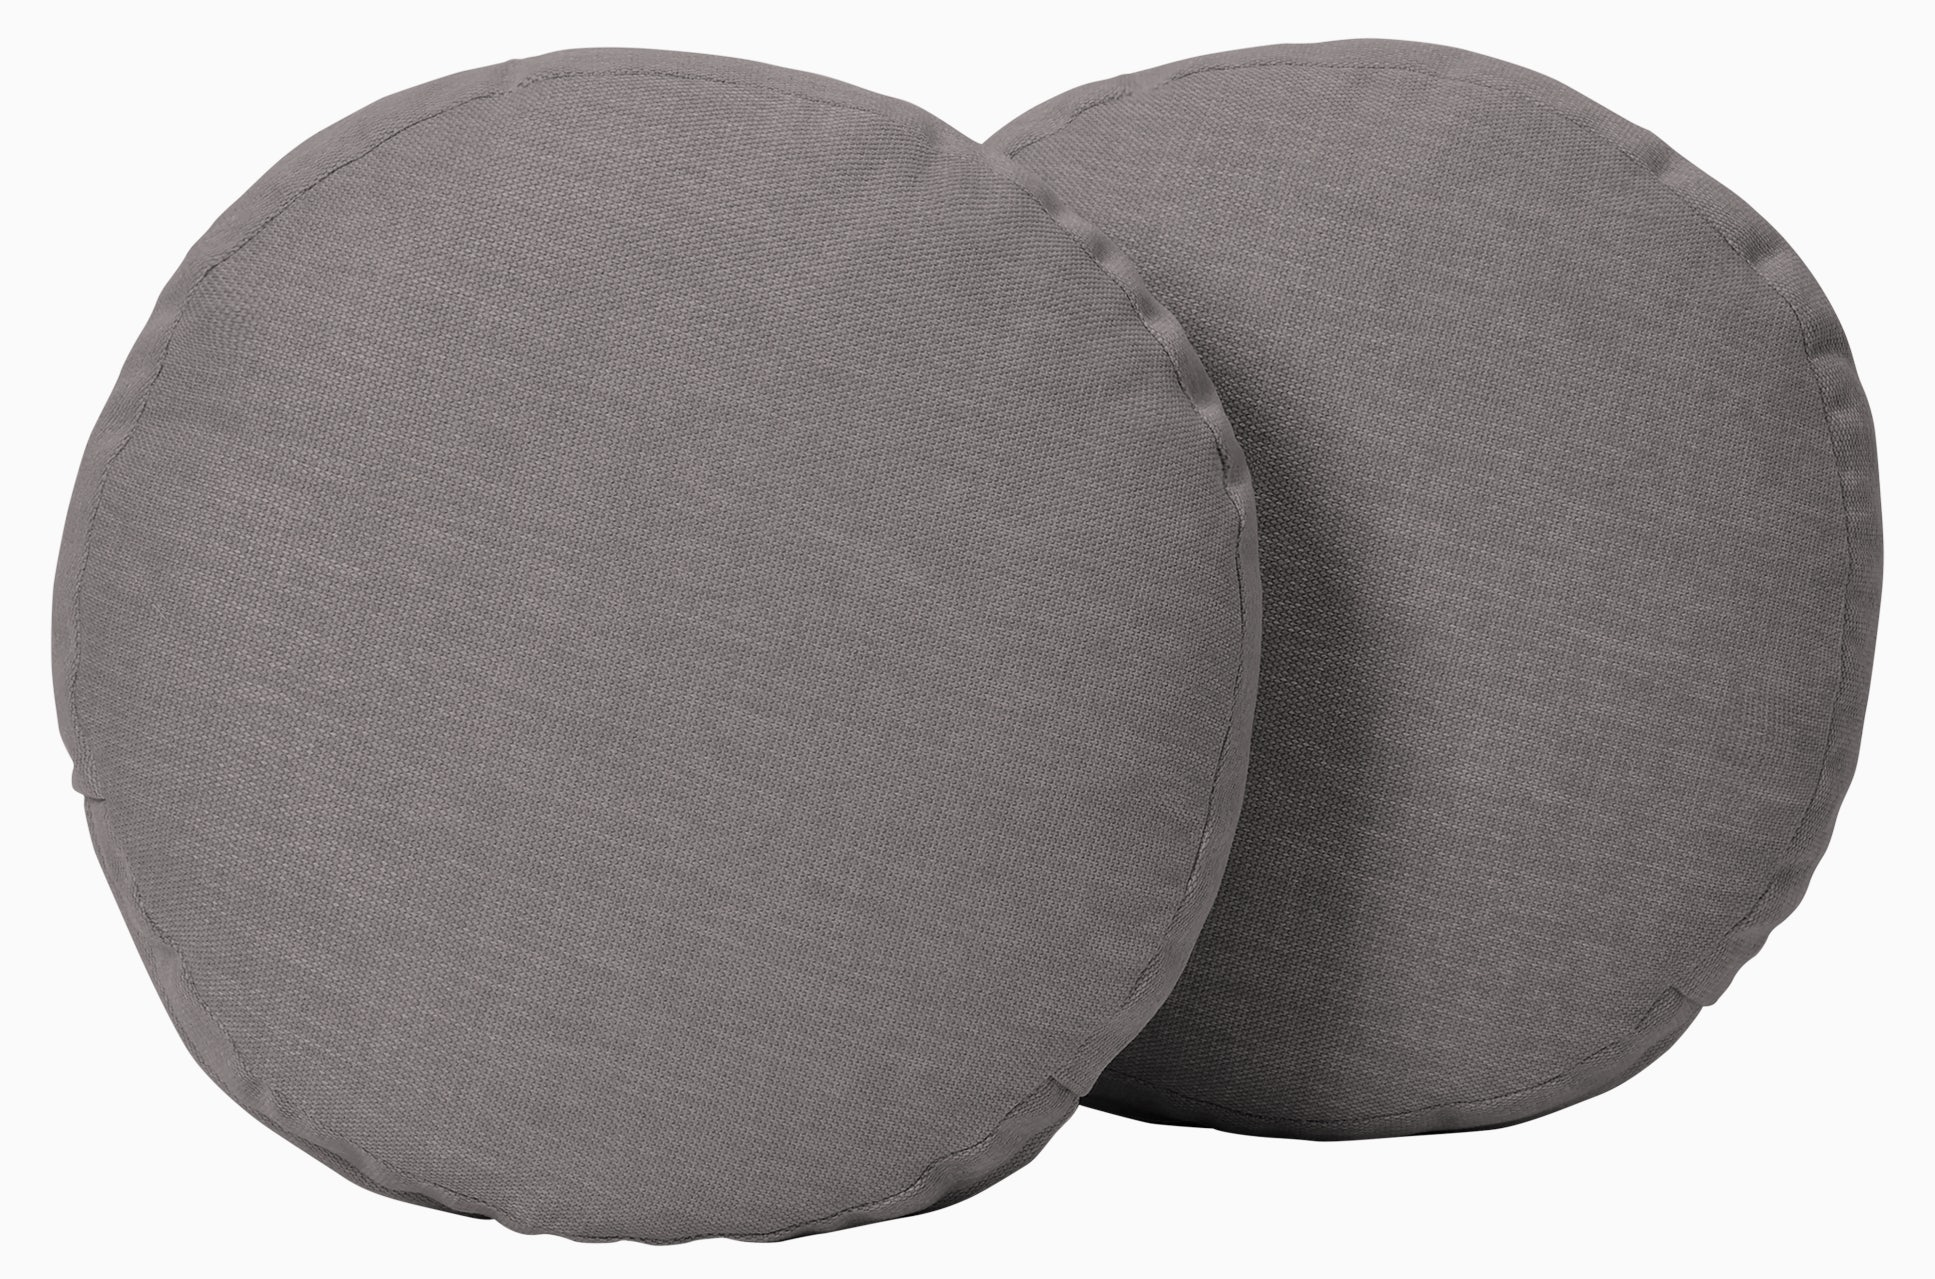 decorative round pillows %28set 2%29 taylor felt grey